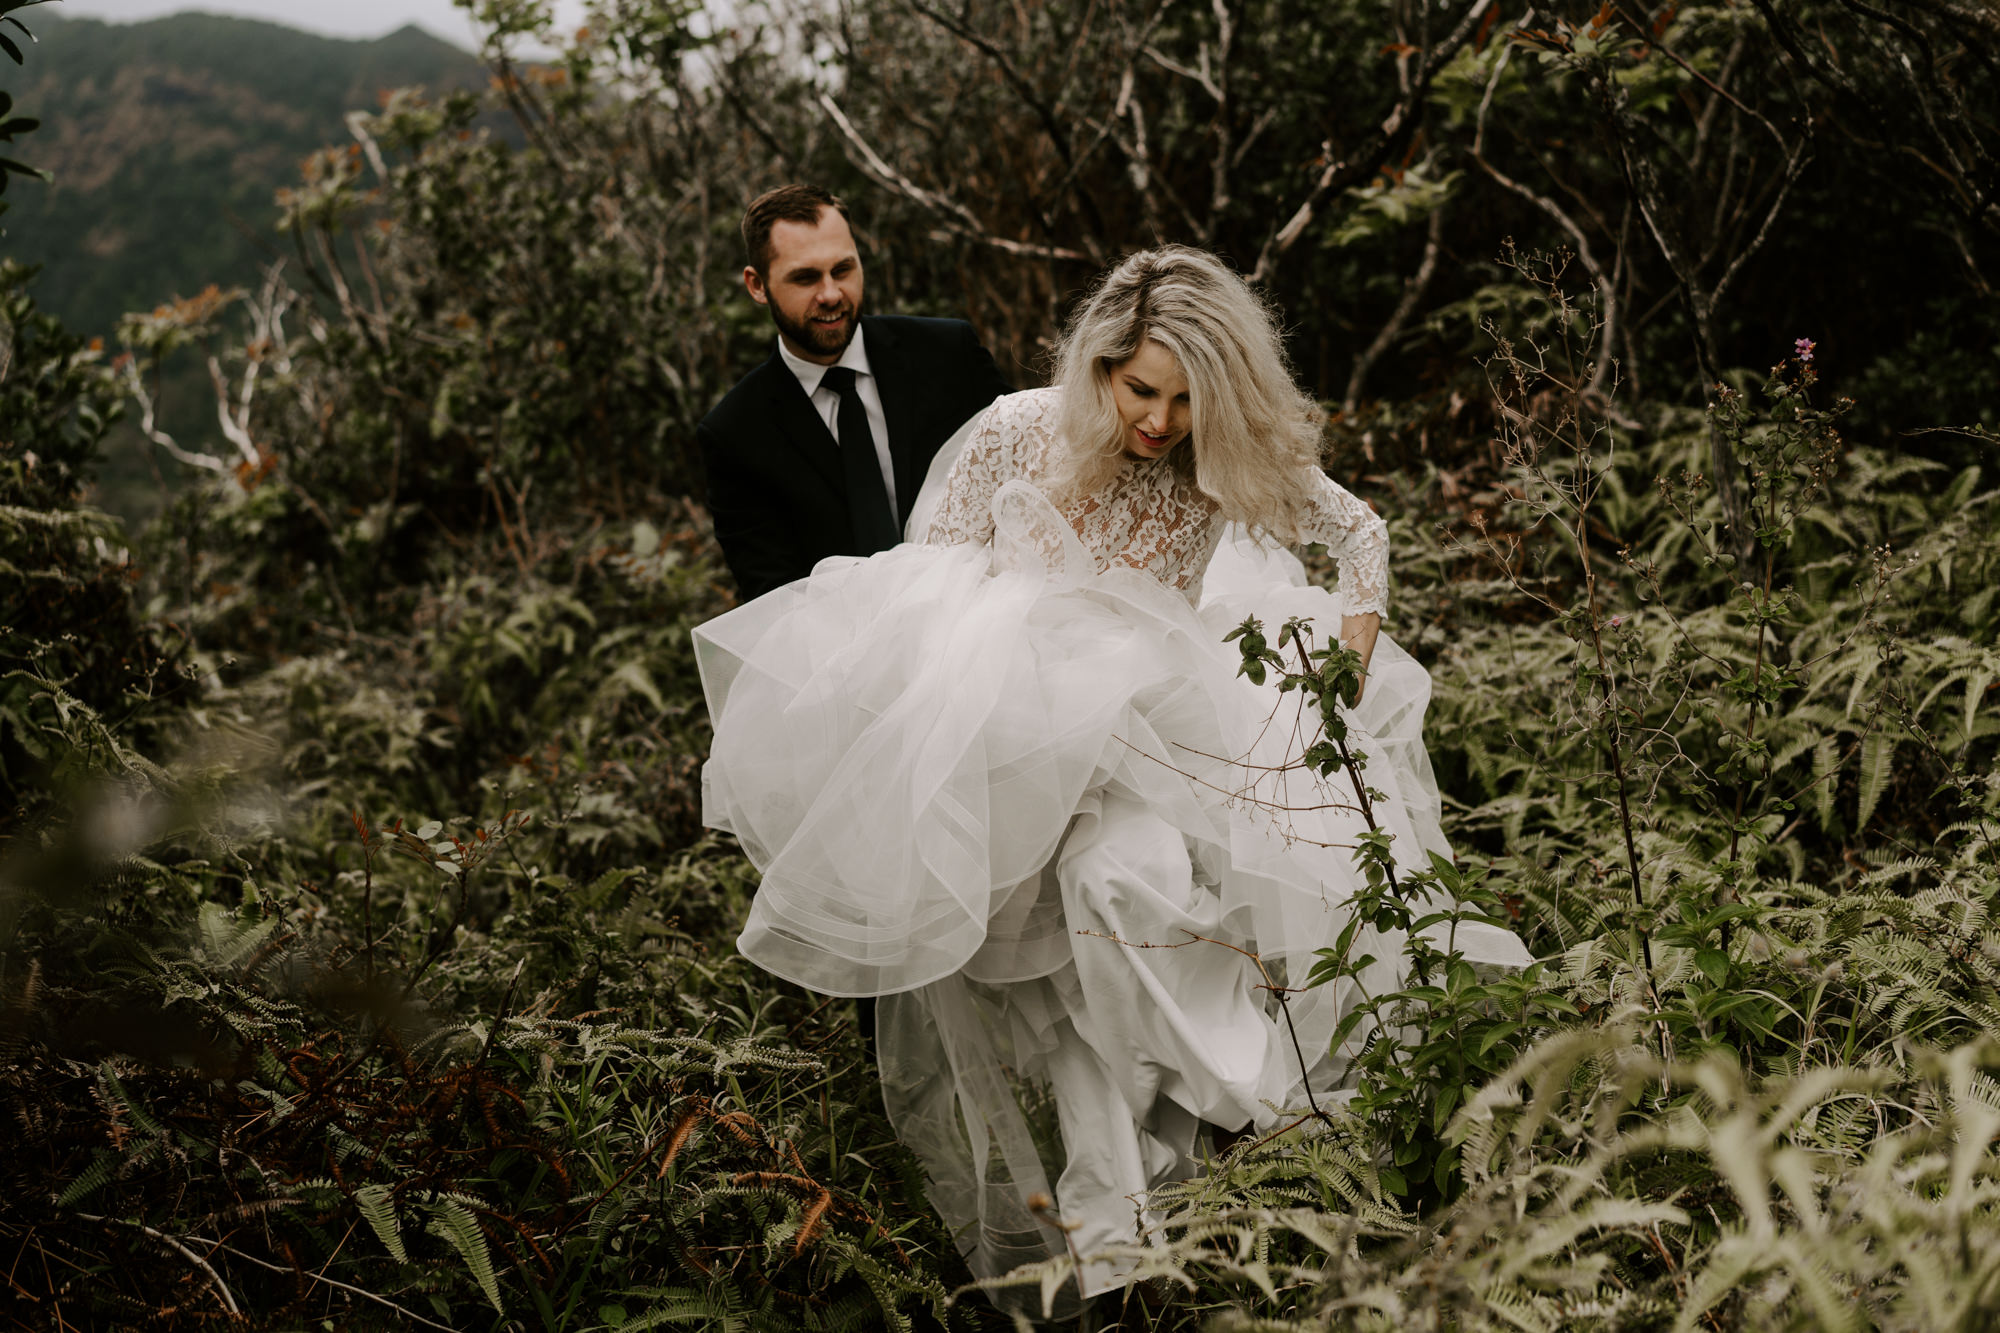 bride-wedding-dress-jungle-hawaii.jpg